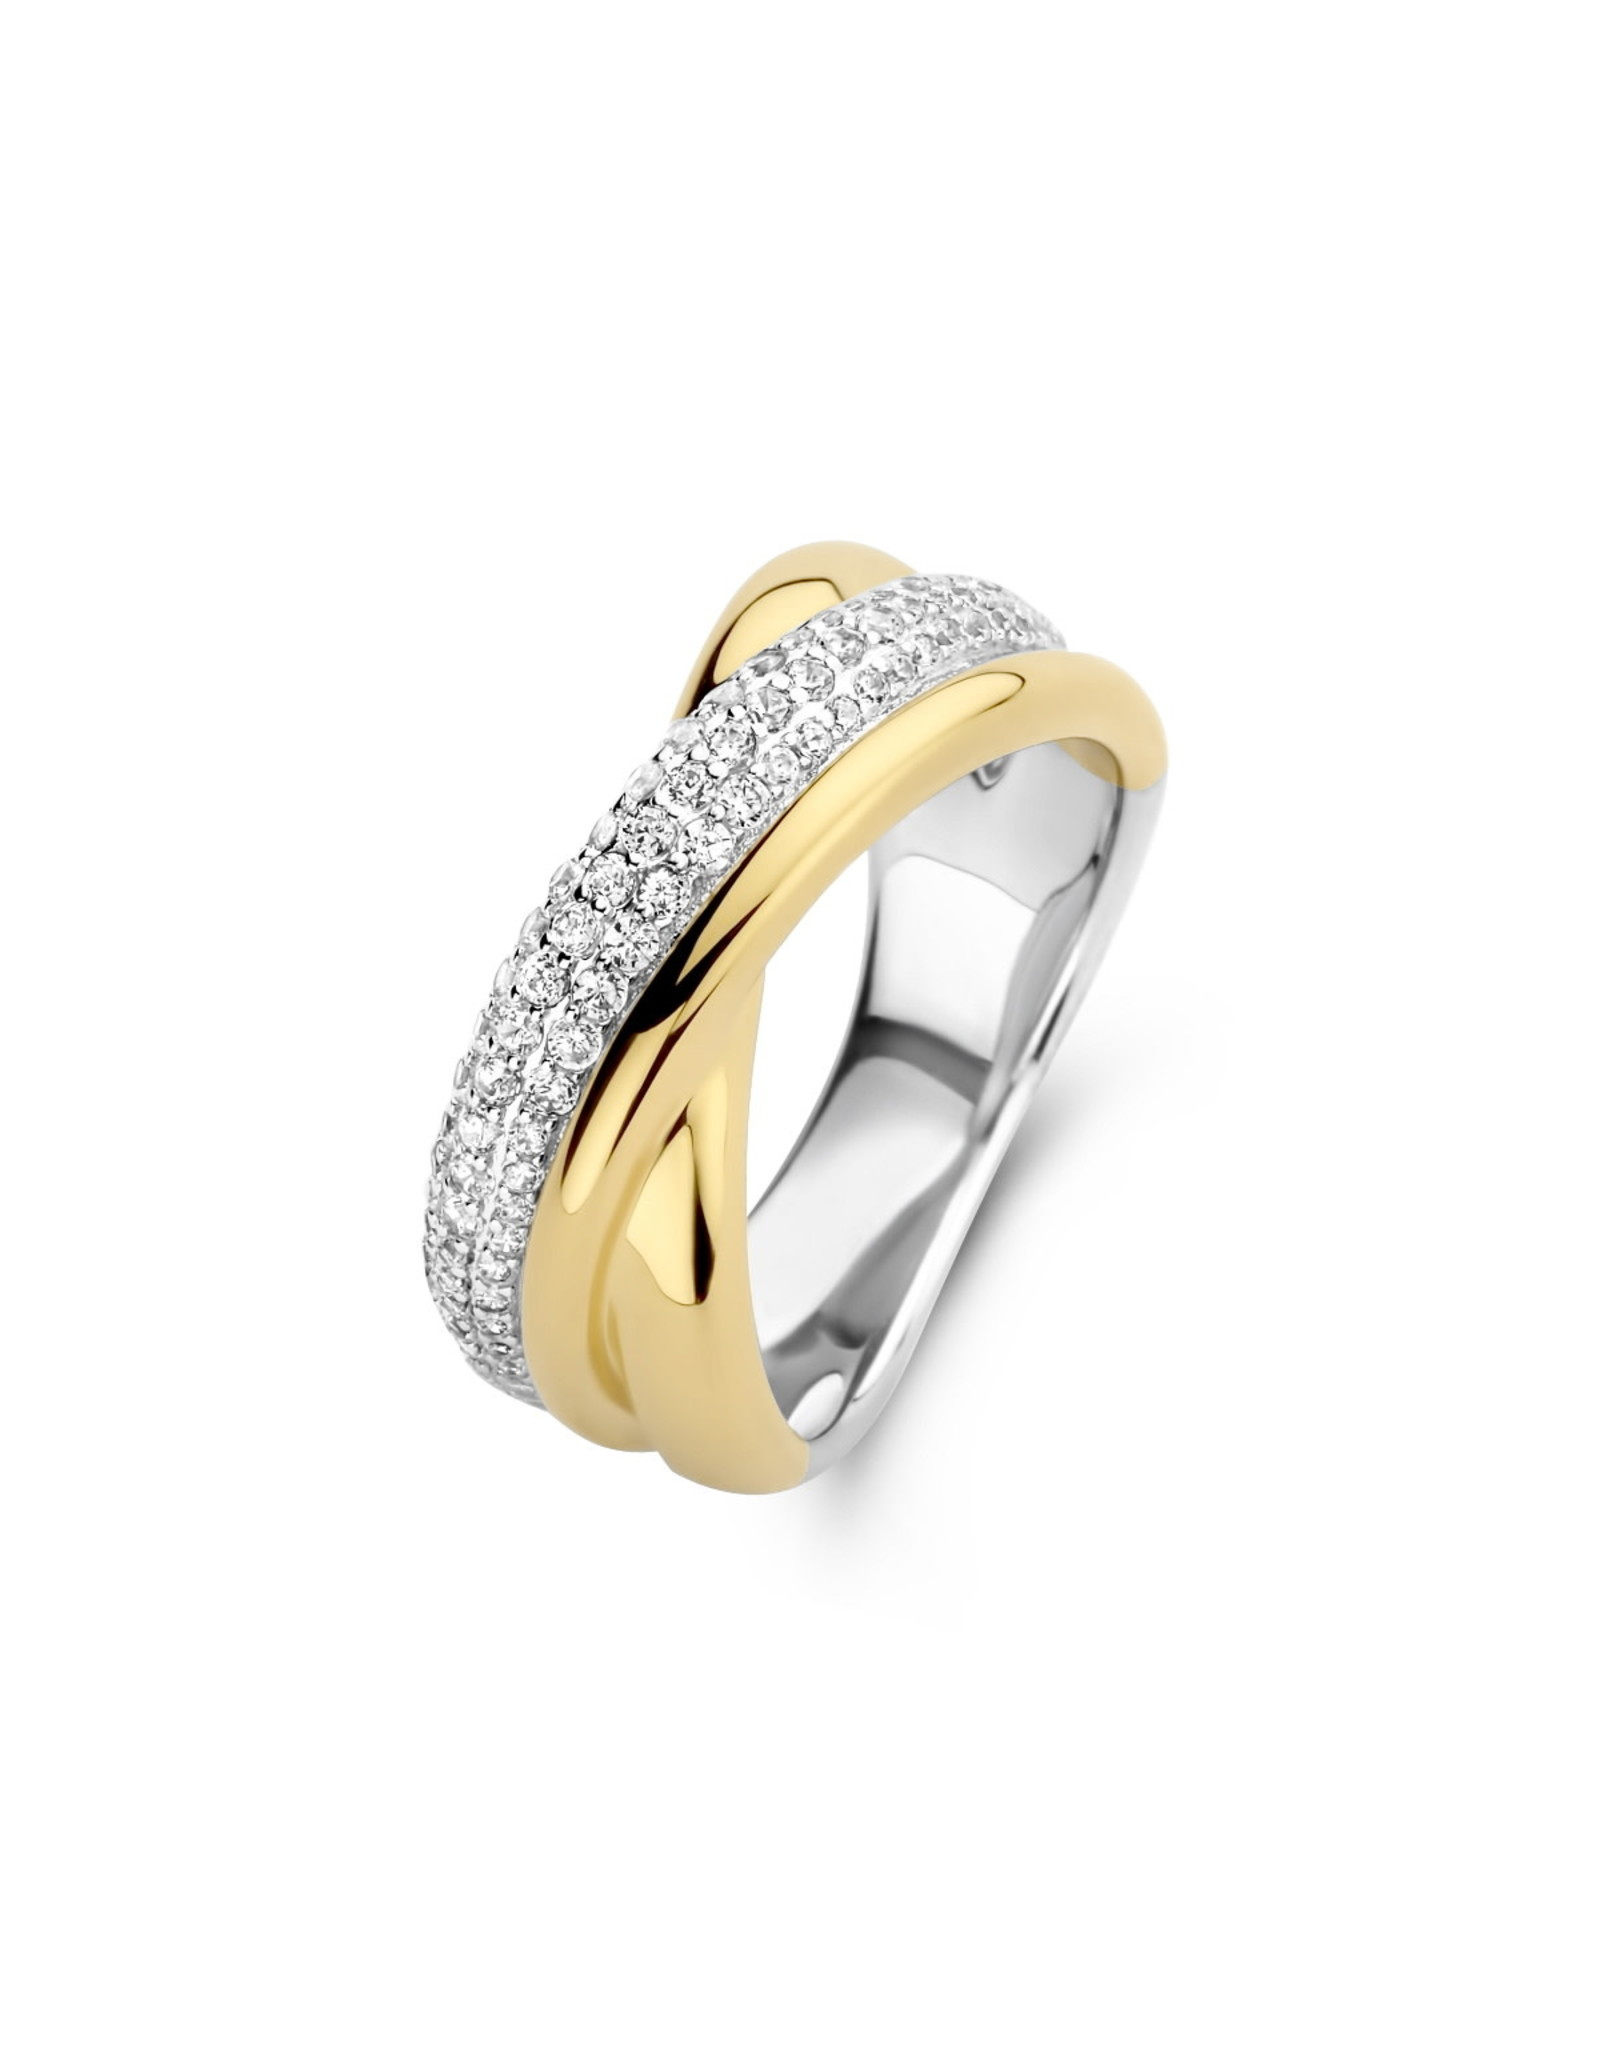 Ring Naiomy Silver N1H54 Bicolor Zilver Verguld